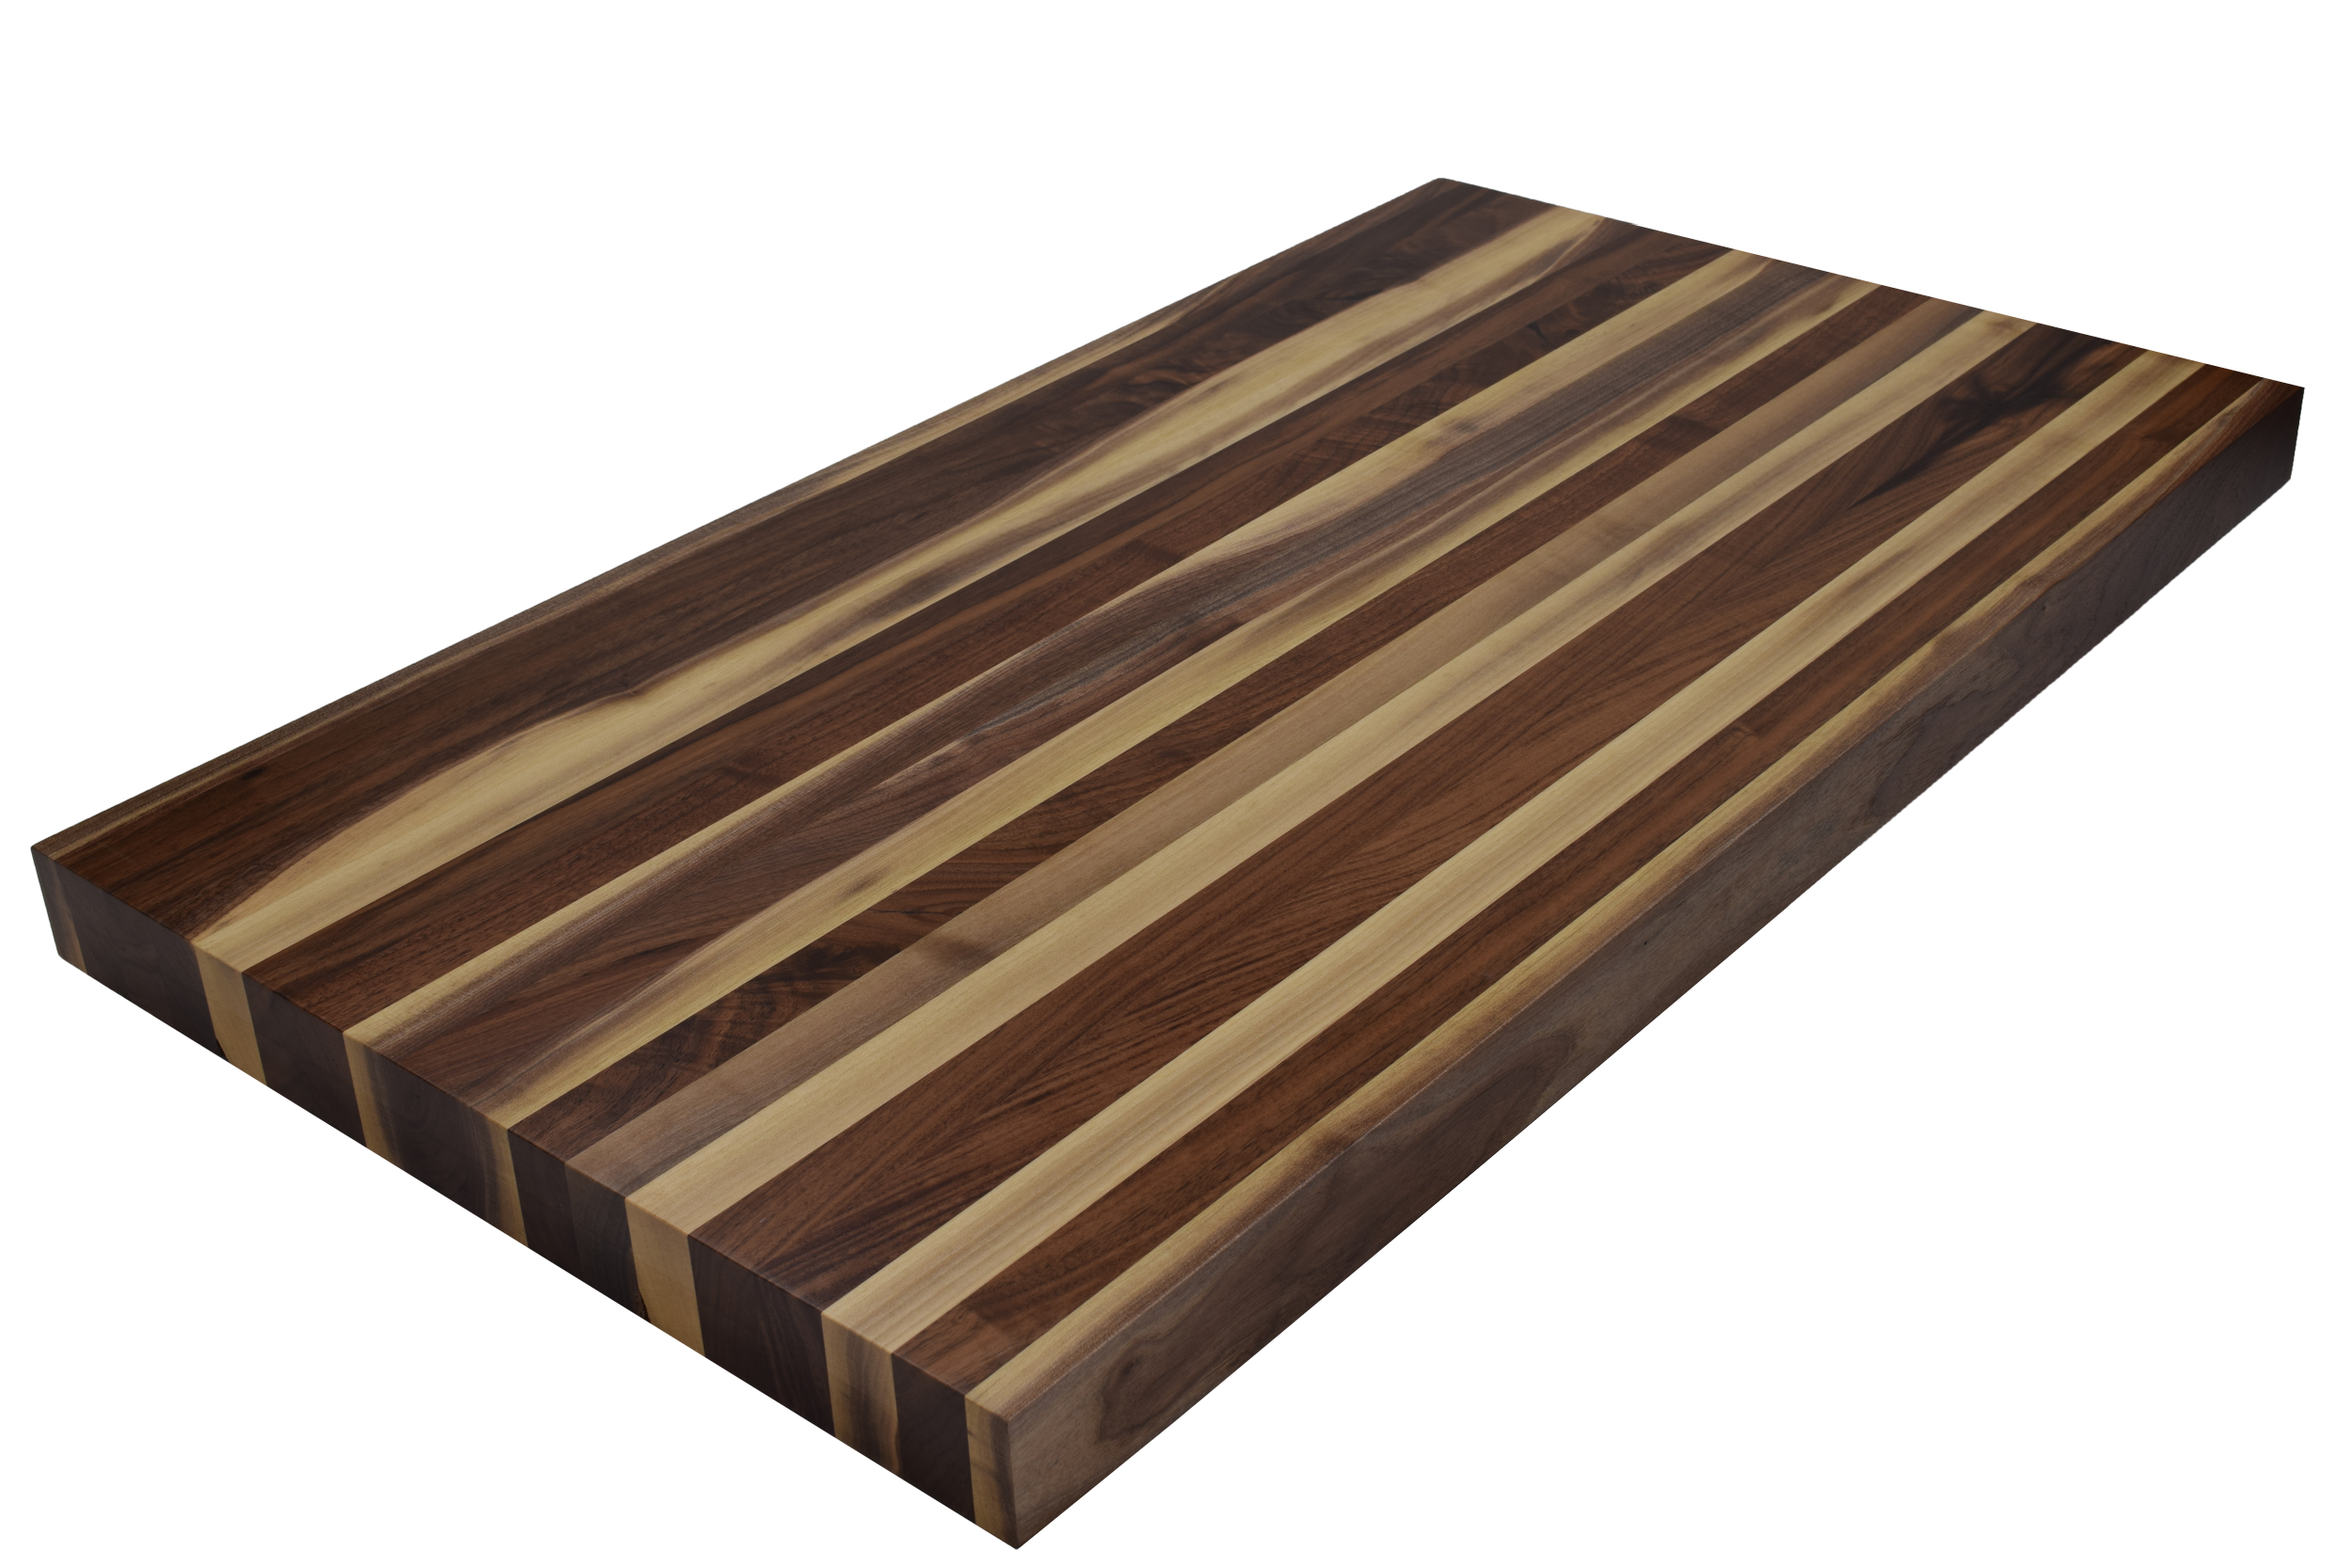 made to order Large End Grain Butcher Block